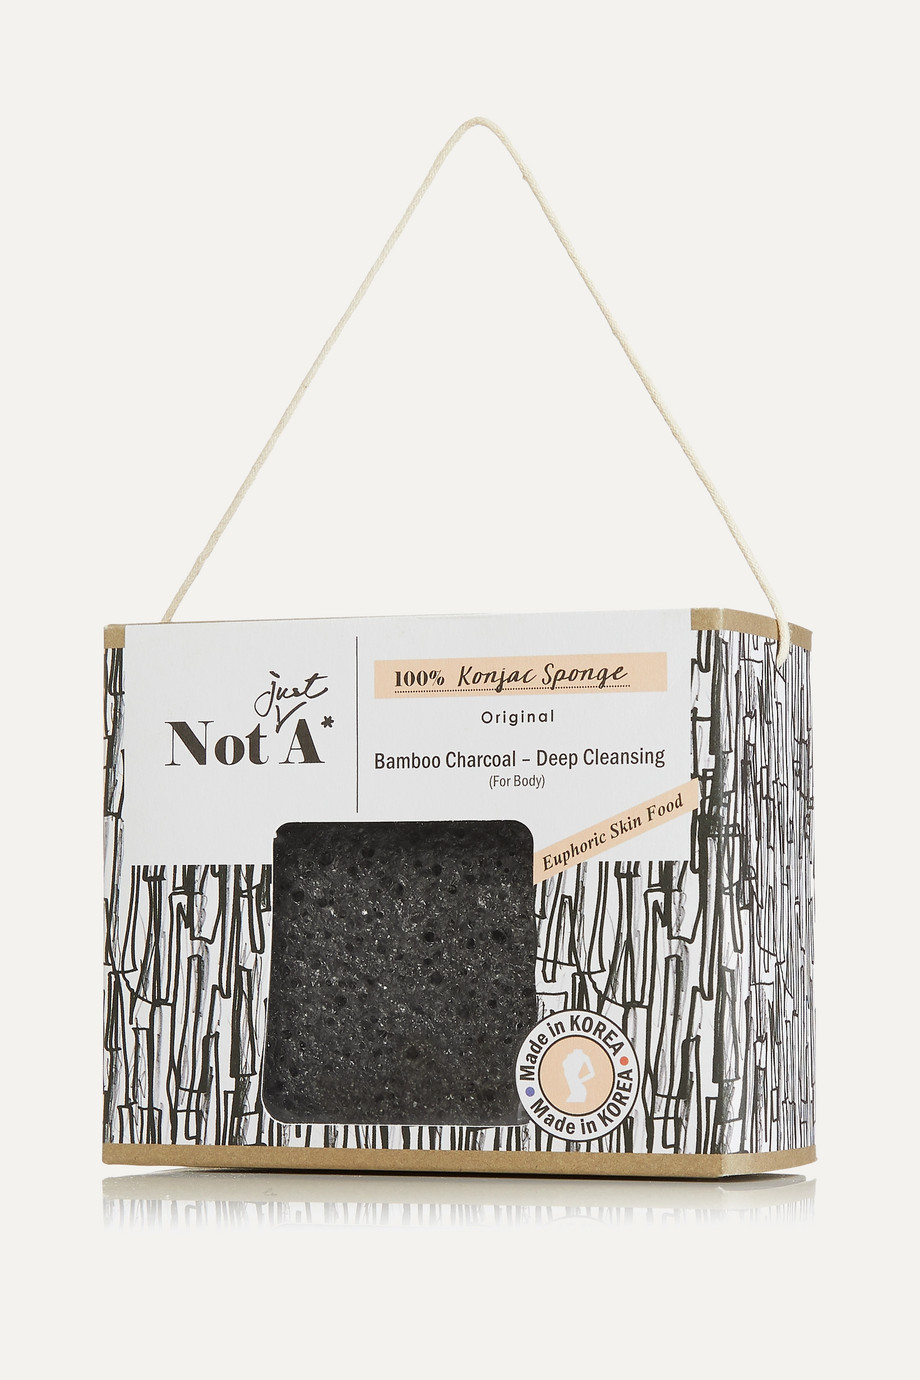 Not Just A* Konjac Body Sponge – Bamboo Charcoal – Körperschwamm